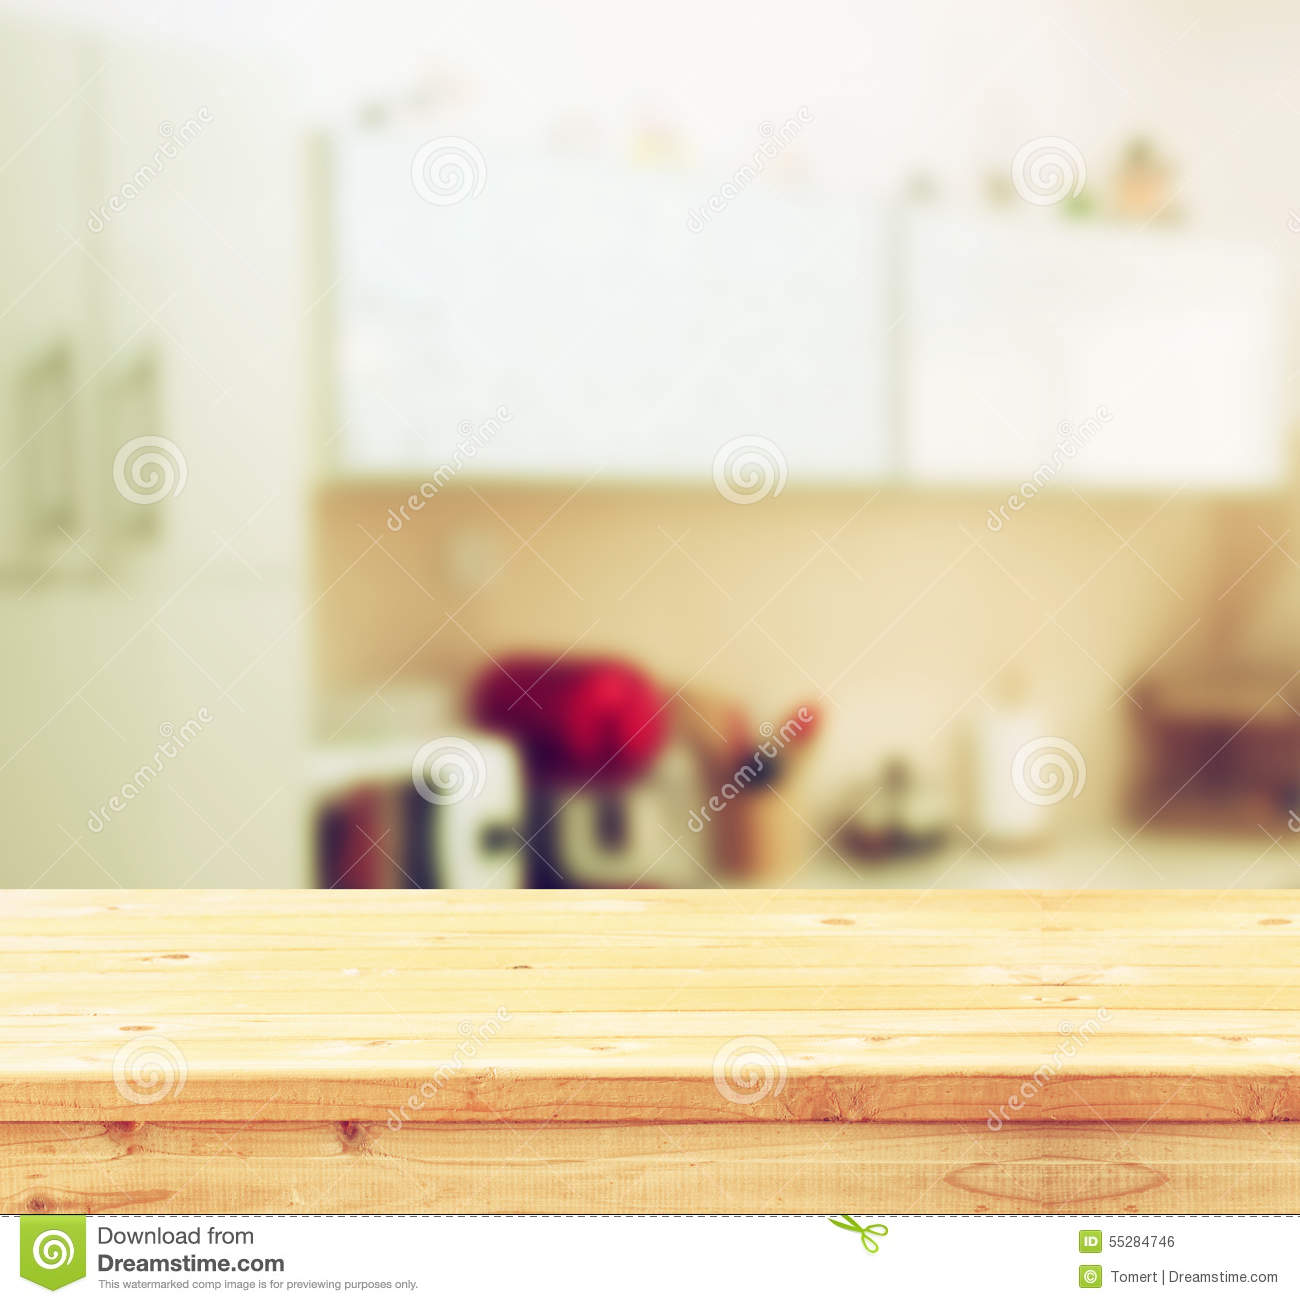 Kitchen Background Image: Empty Table Board And Defocused White Retro Kitchen